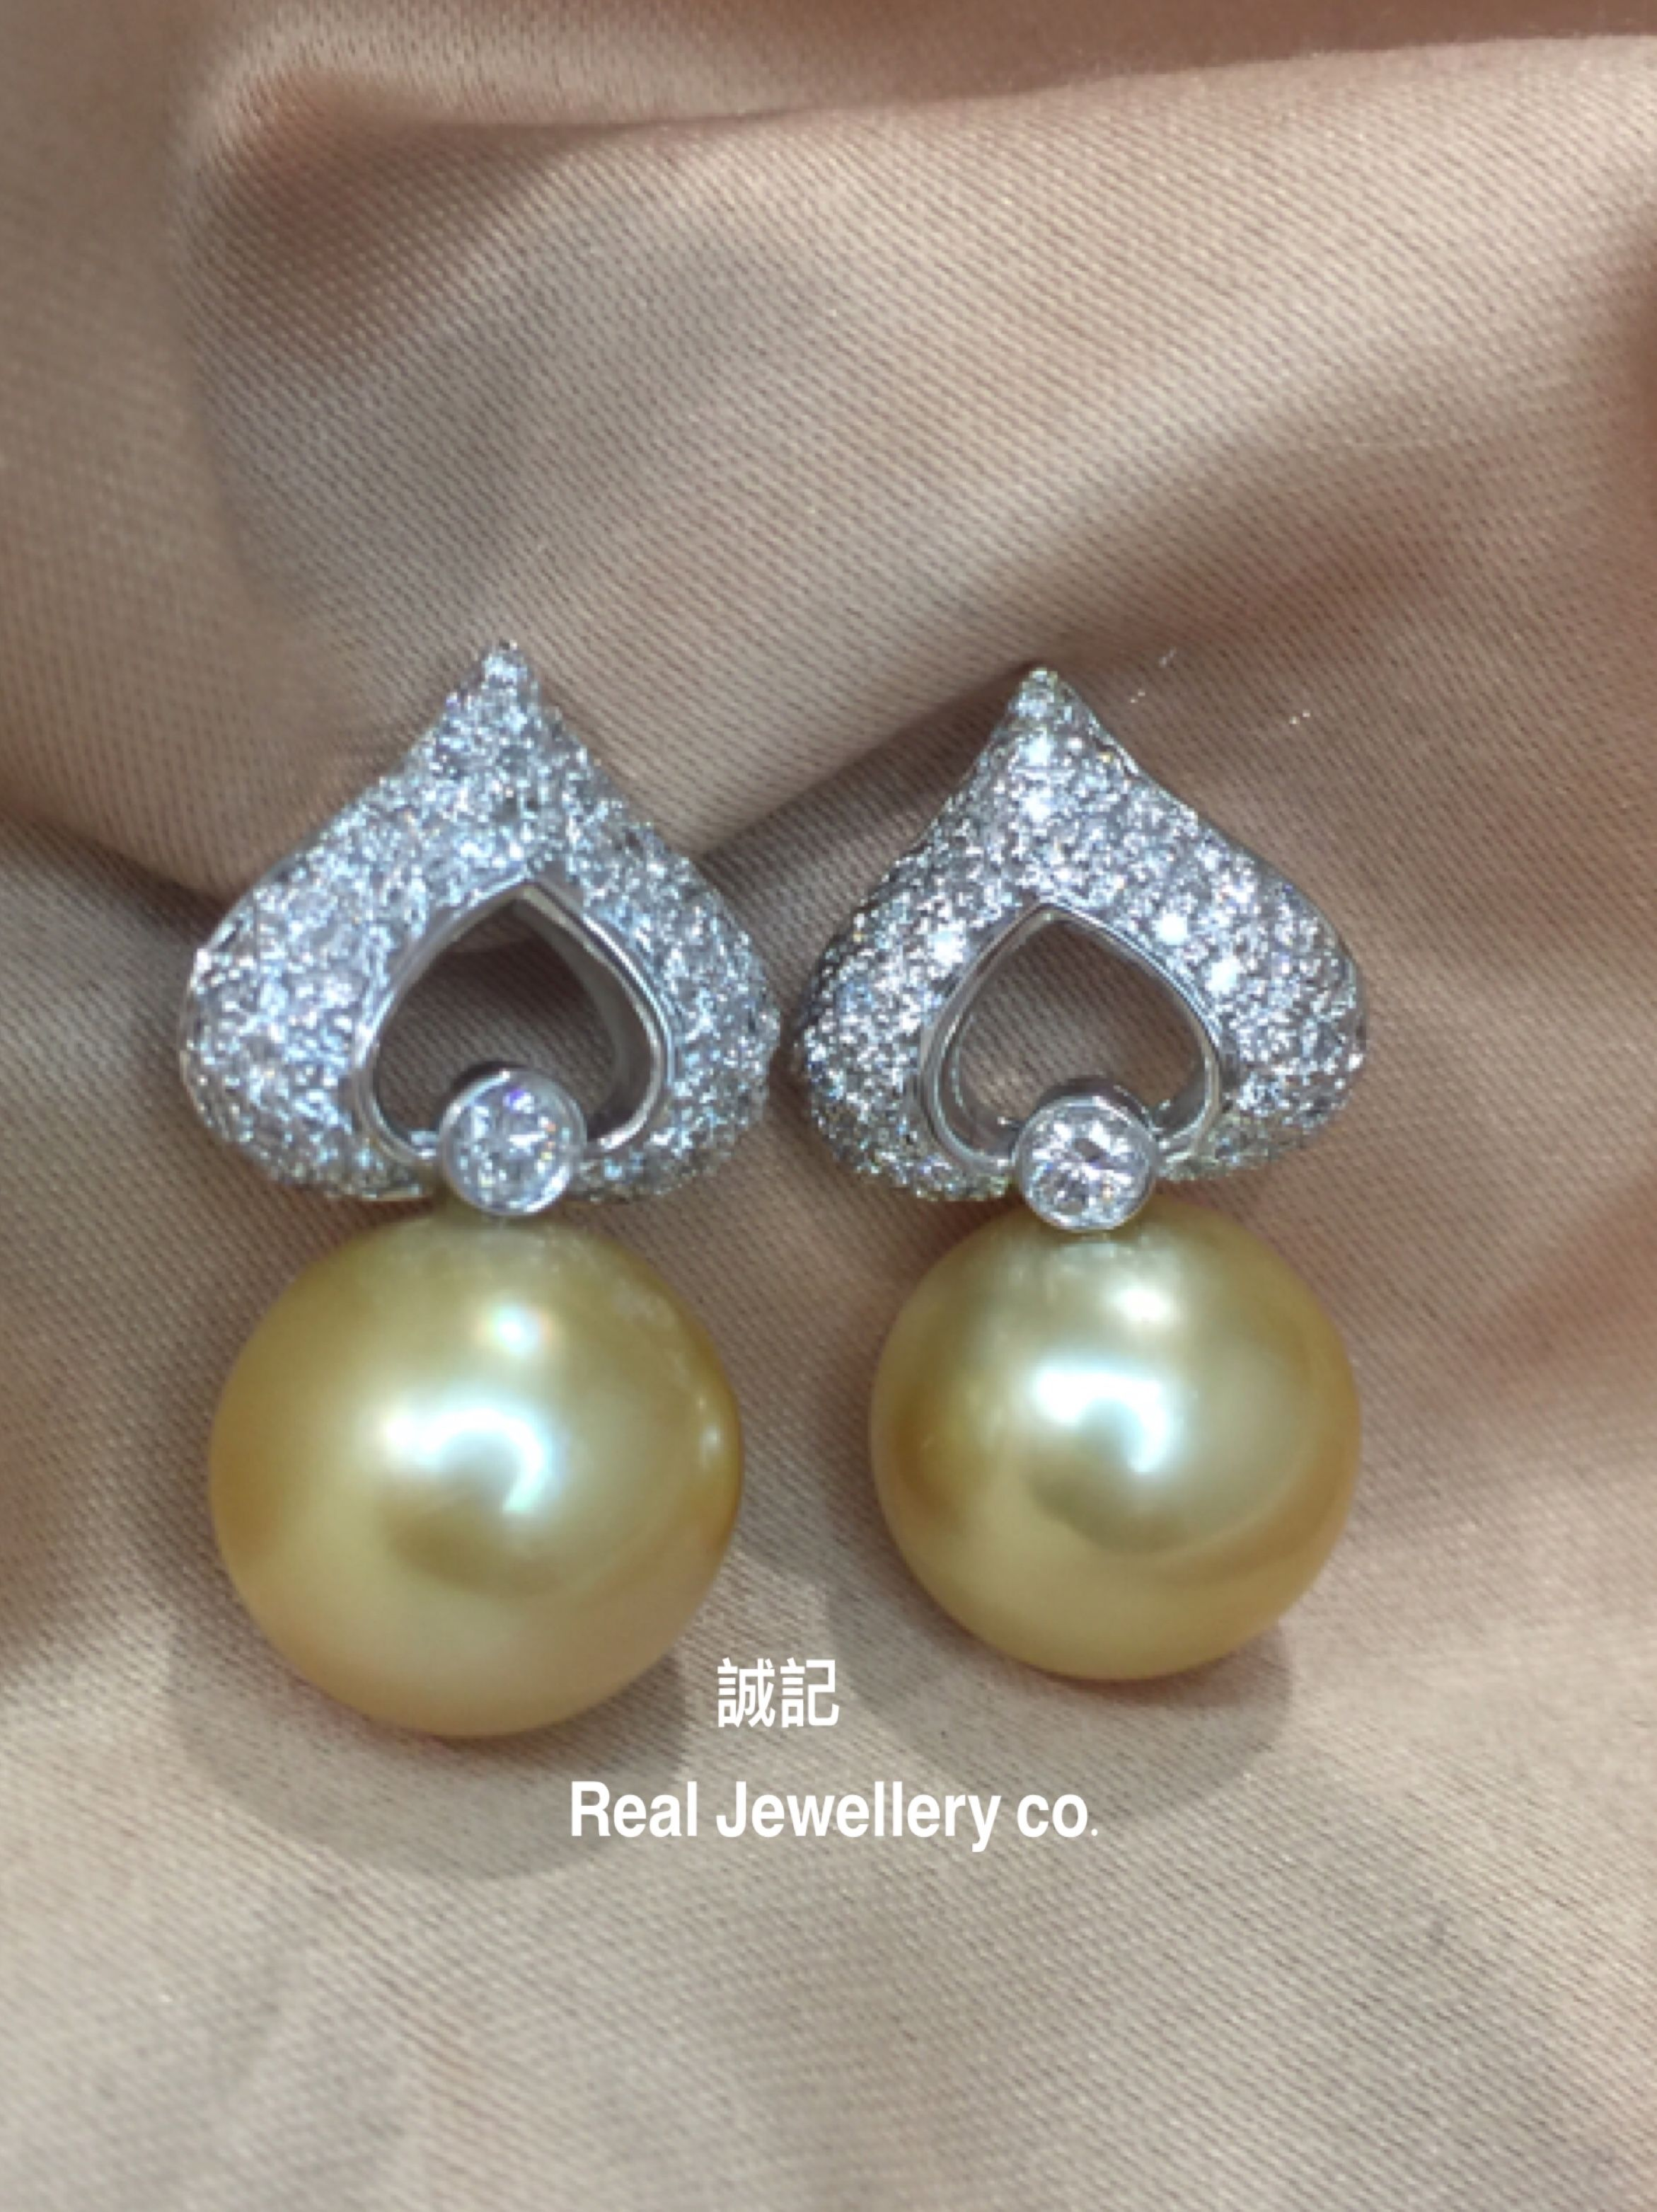 Golden south sea pearls with diamonds earrings。誠記 Real Jewellery